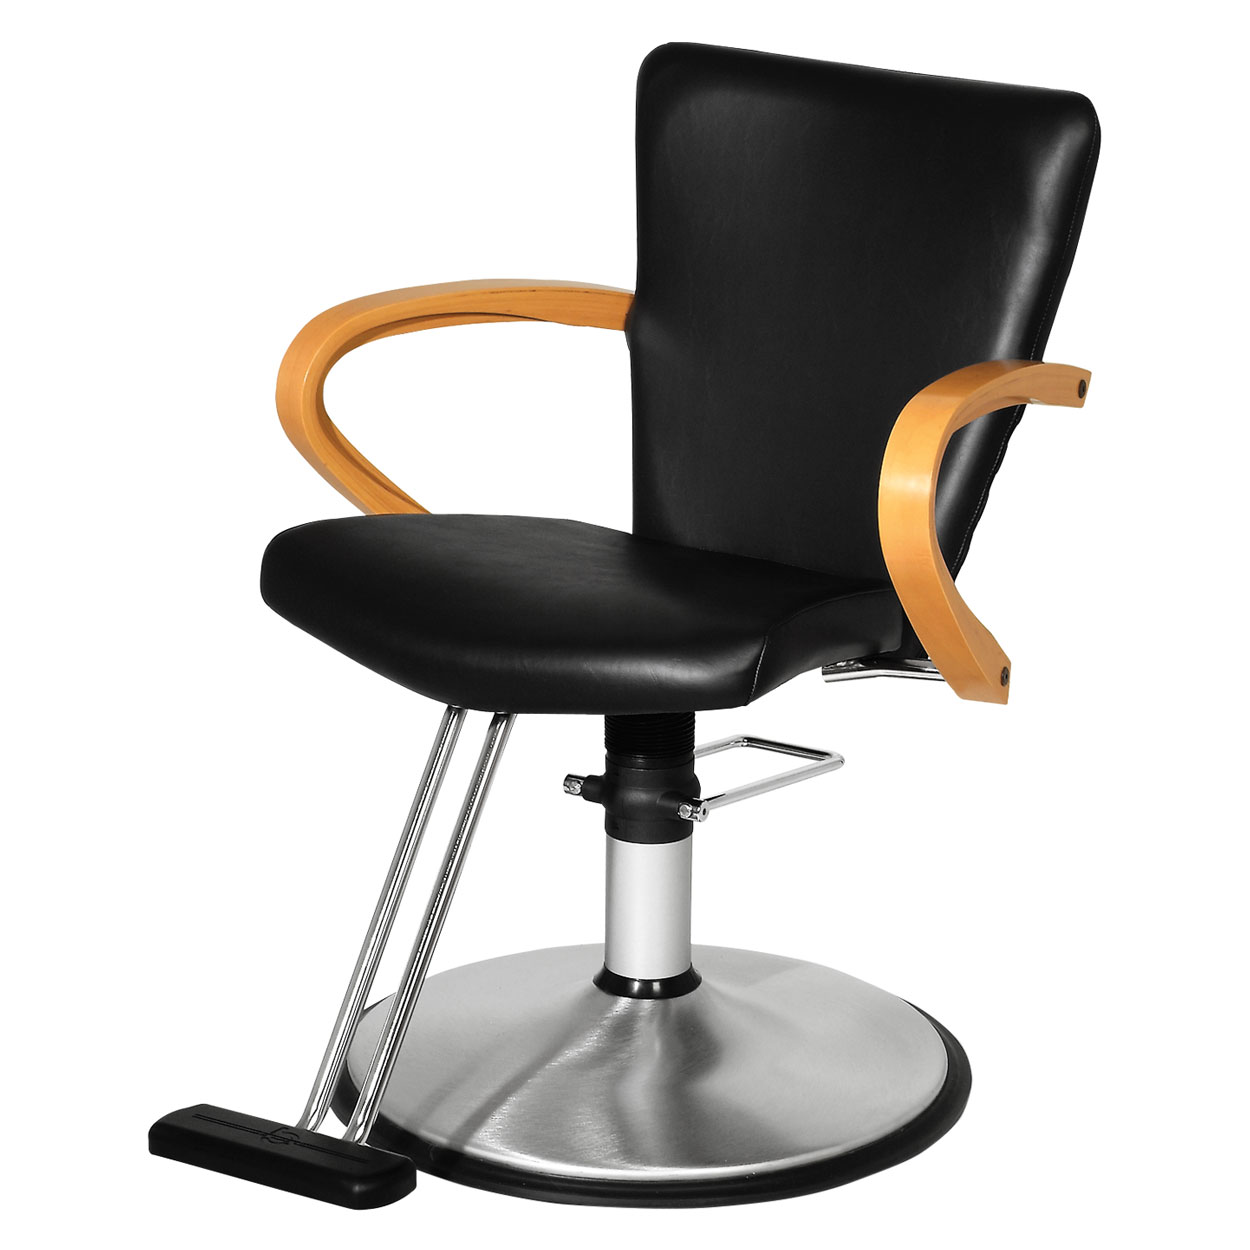 Belvedere Caddy Salon Chair product image